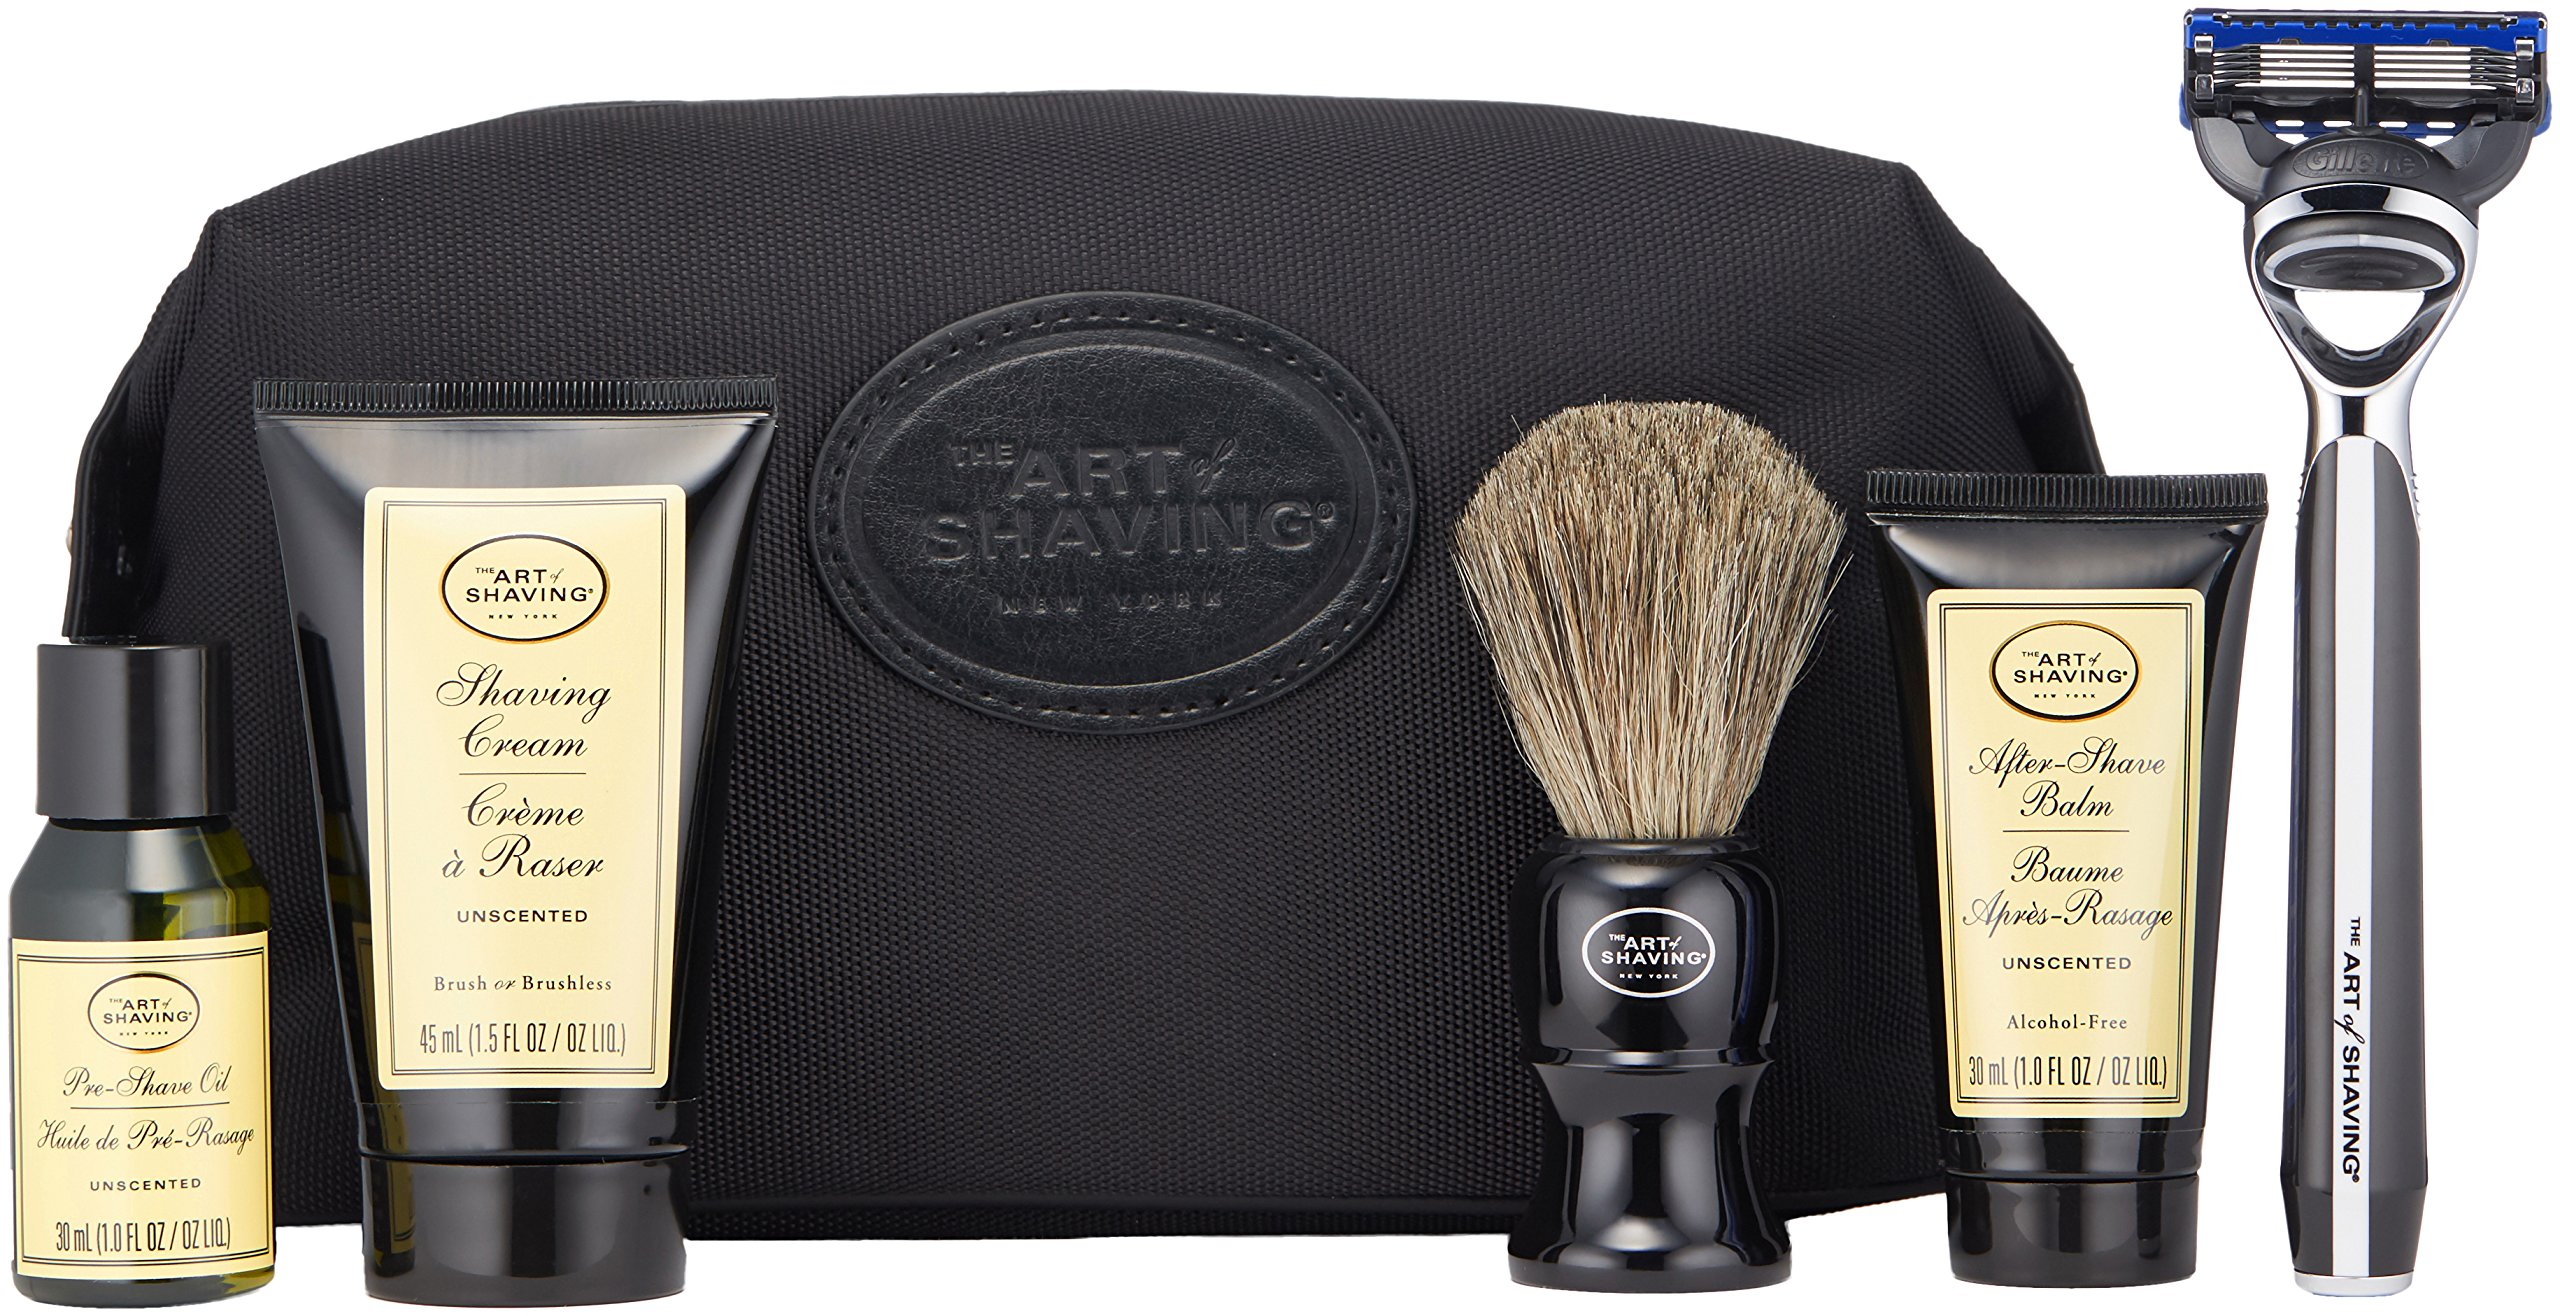 The Art of Shaving 5 Piece Travel Kit with Morris Park Razor, Unscented by The Art of Shaving